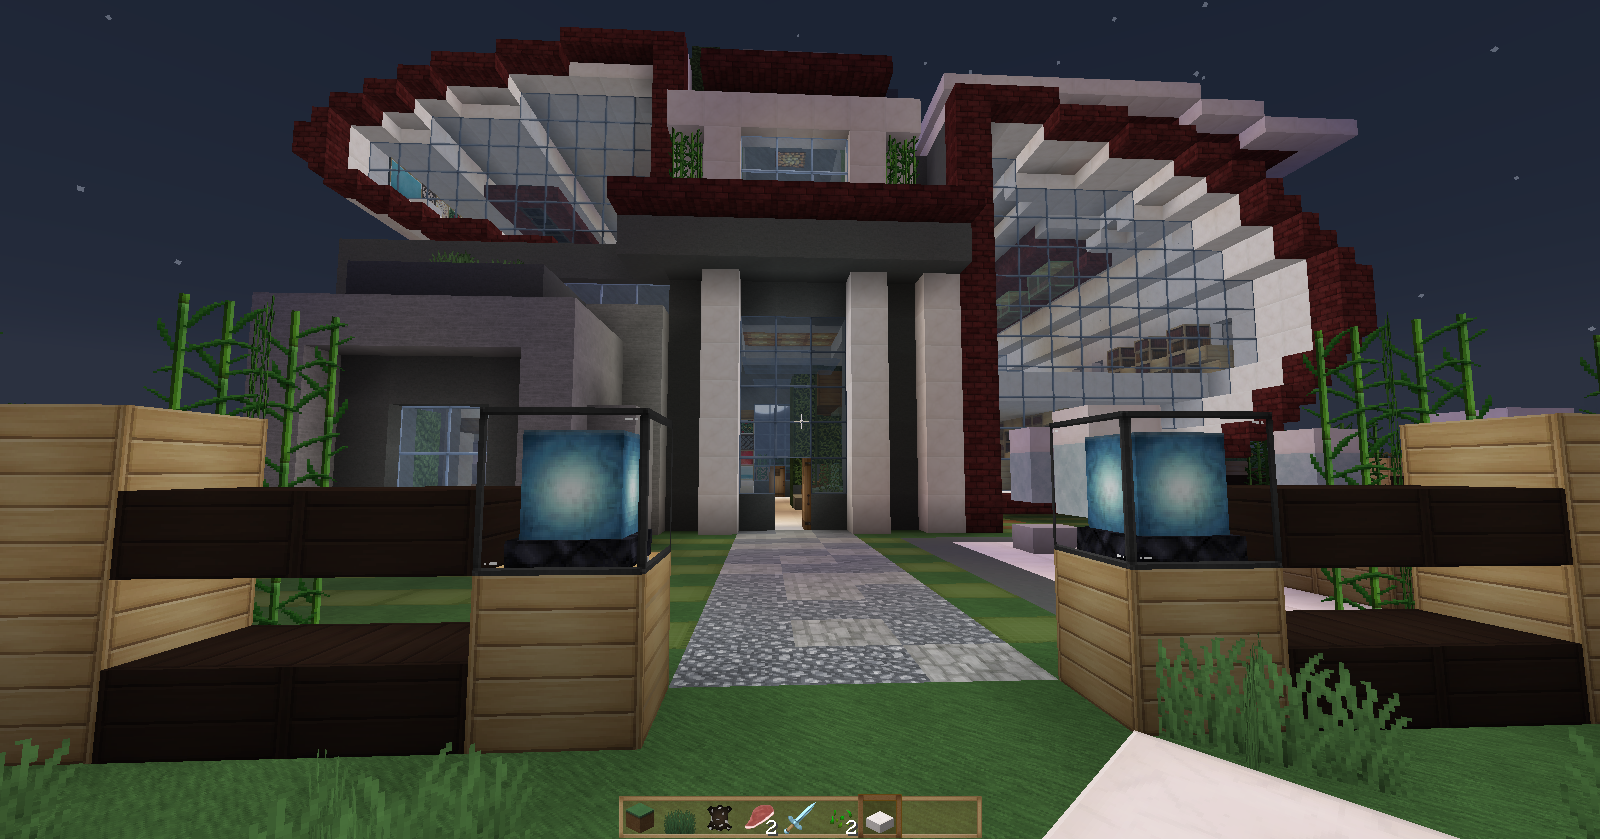 Minecraft casas modernas buscar con google ideas para for Casas minecraft planos